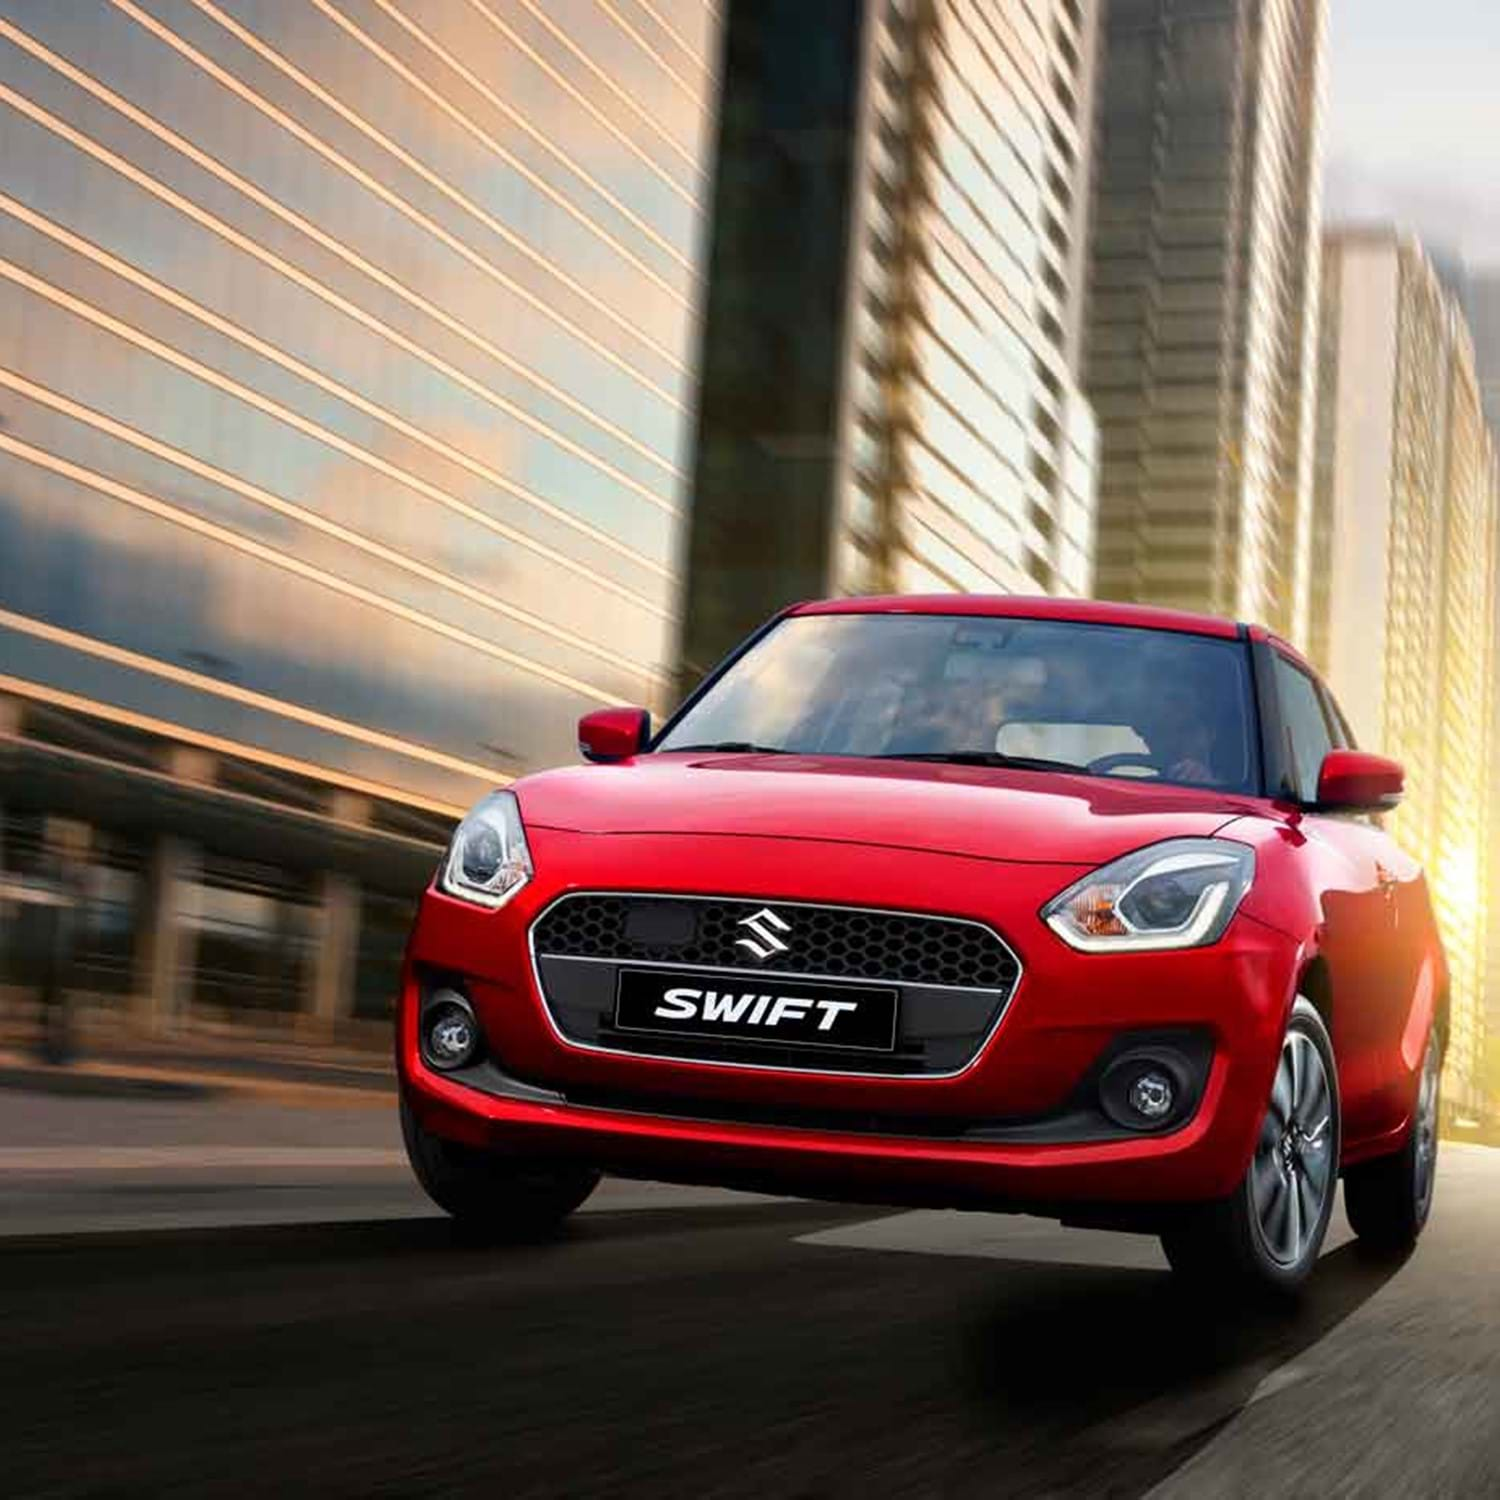 A red Swift driving through a city